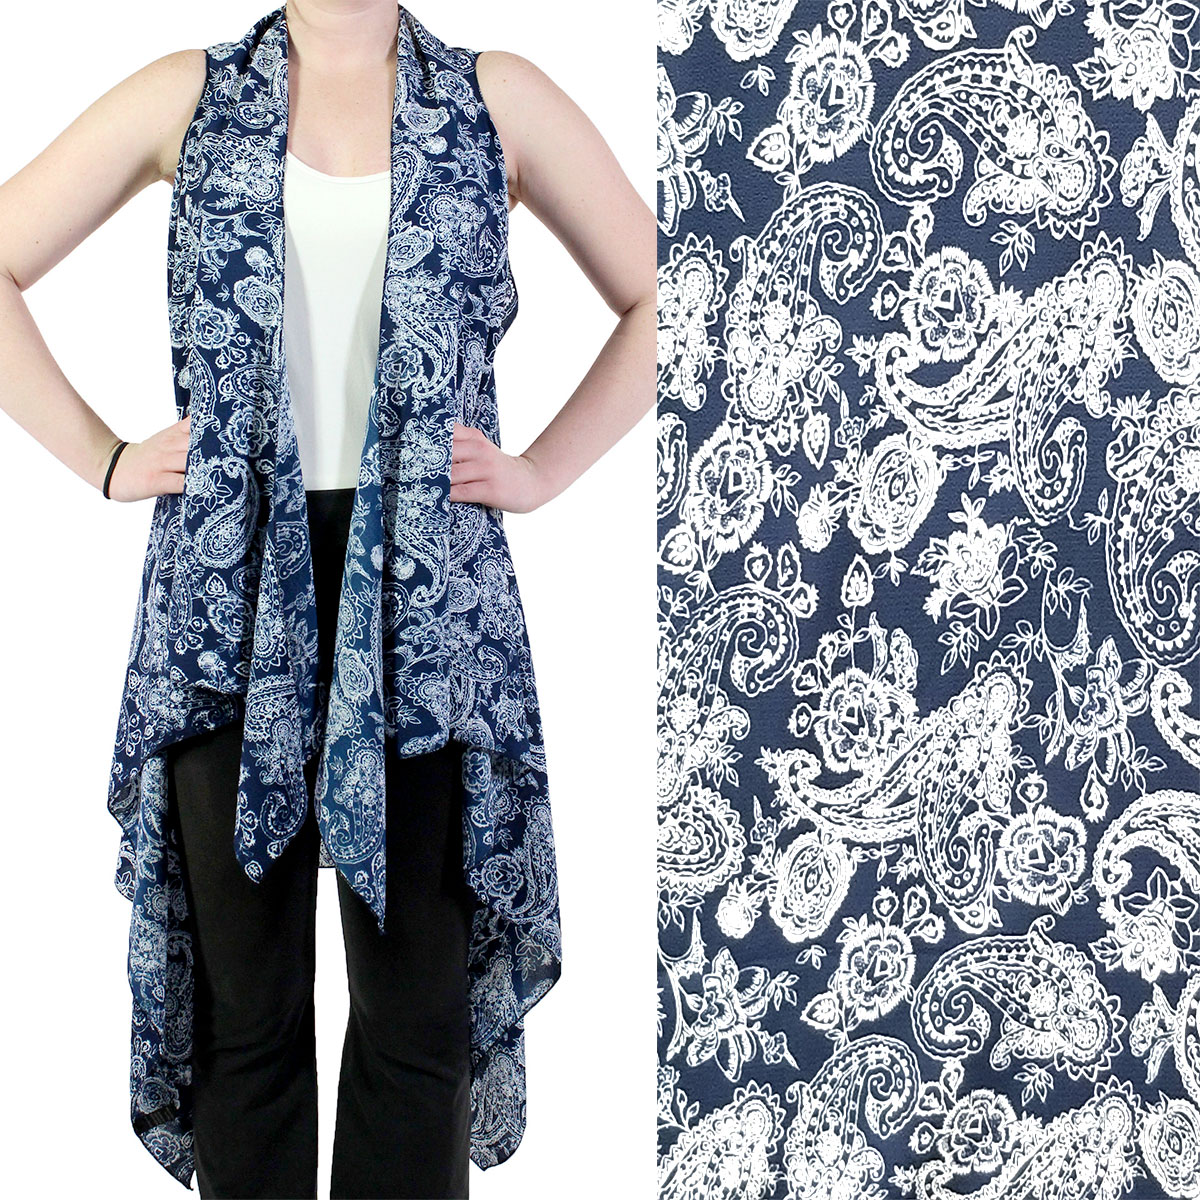 SV1272 Blue/White Paisley